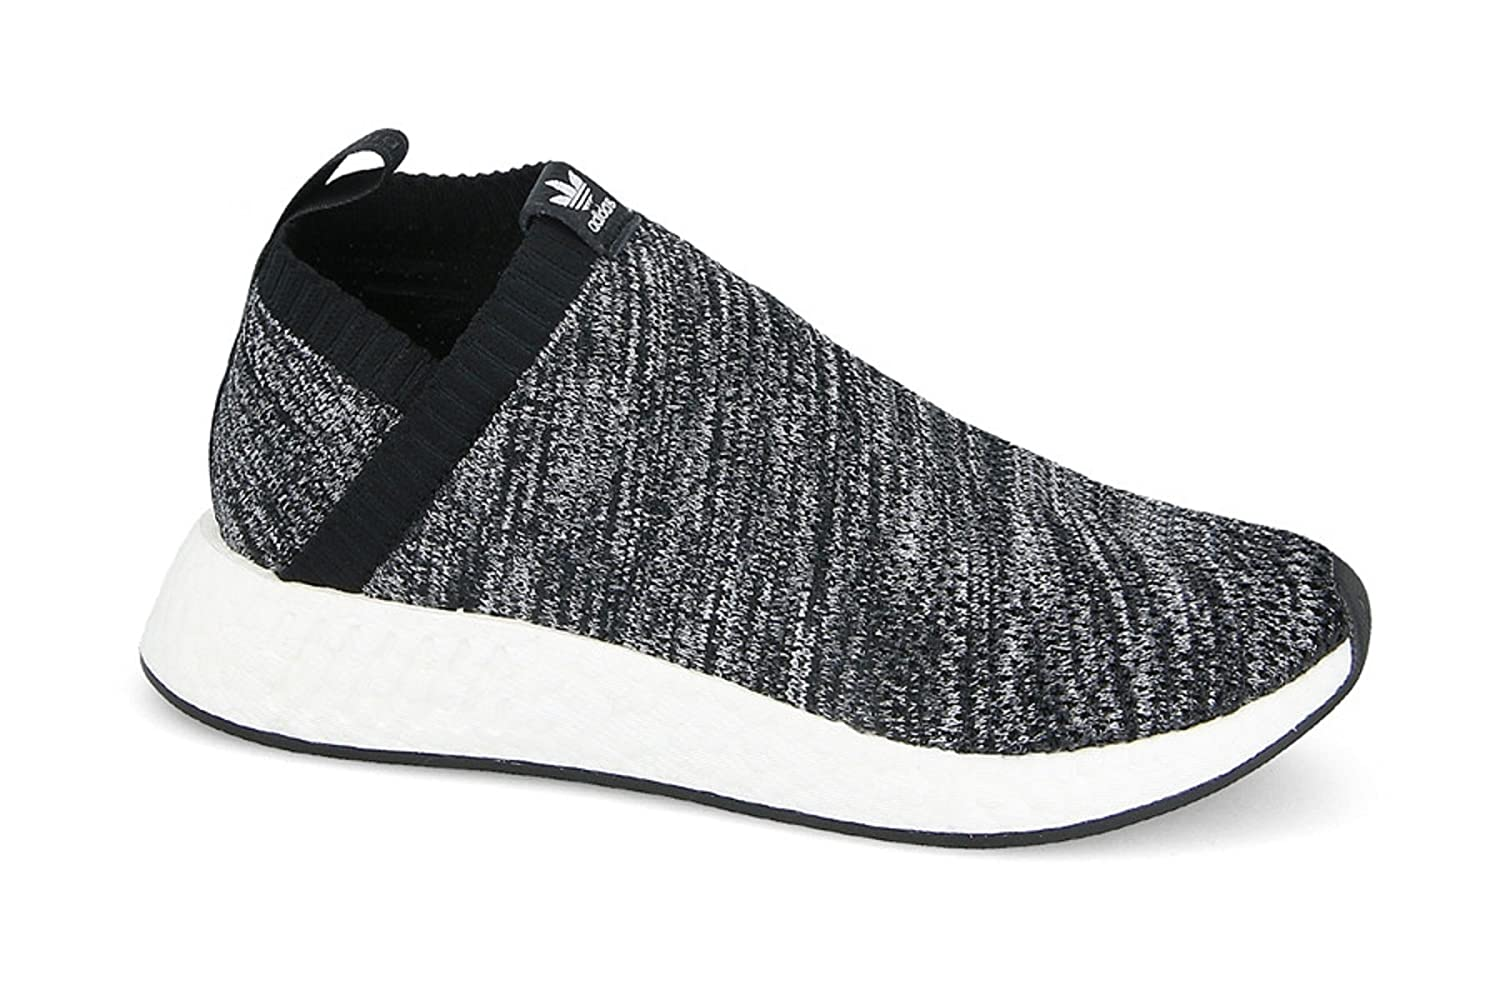 adidas Originals X Ua&Sons NMD CS2 Primeknit DA9089: Amazon